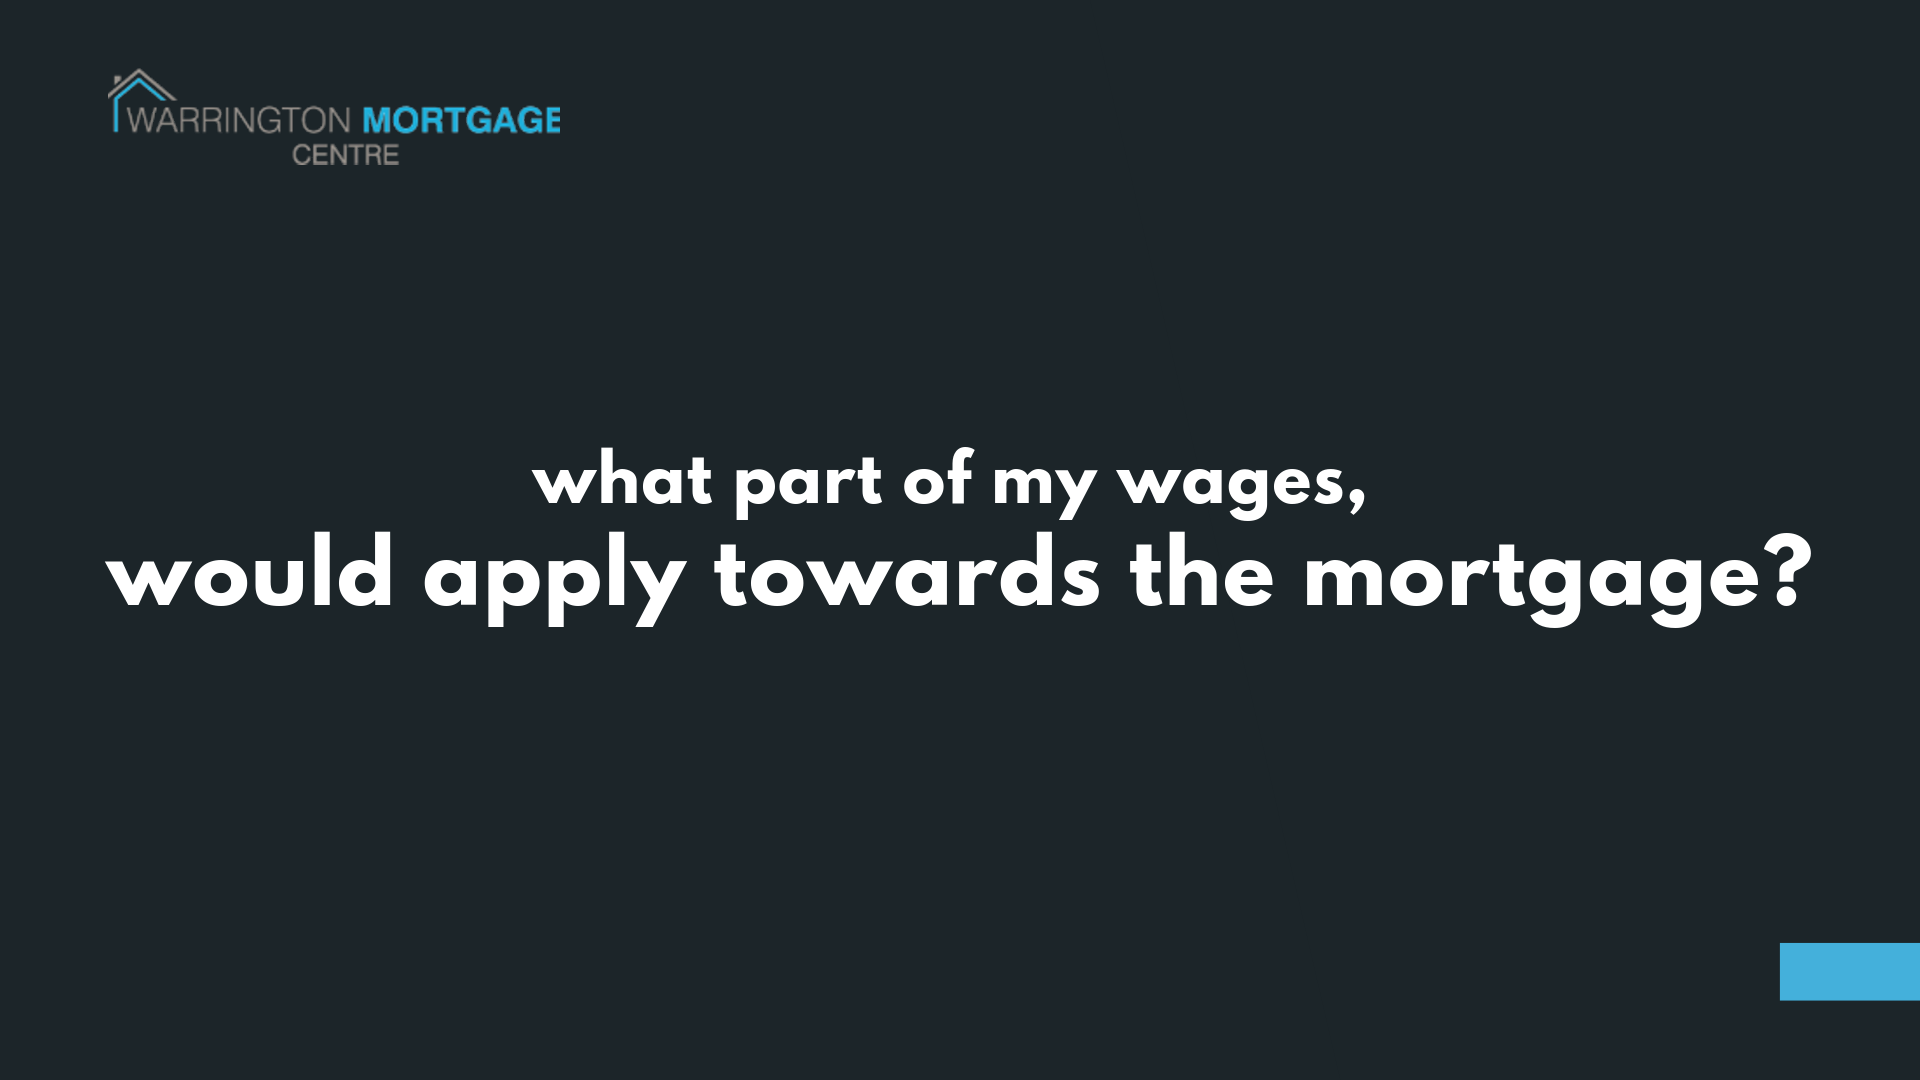 What part of your wages count towards your mortgage?